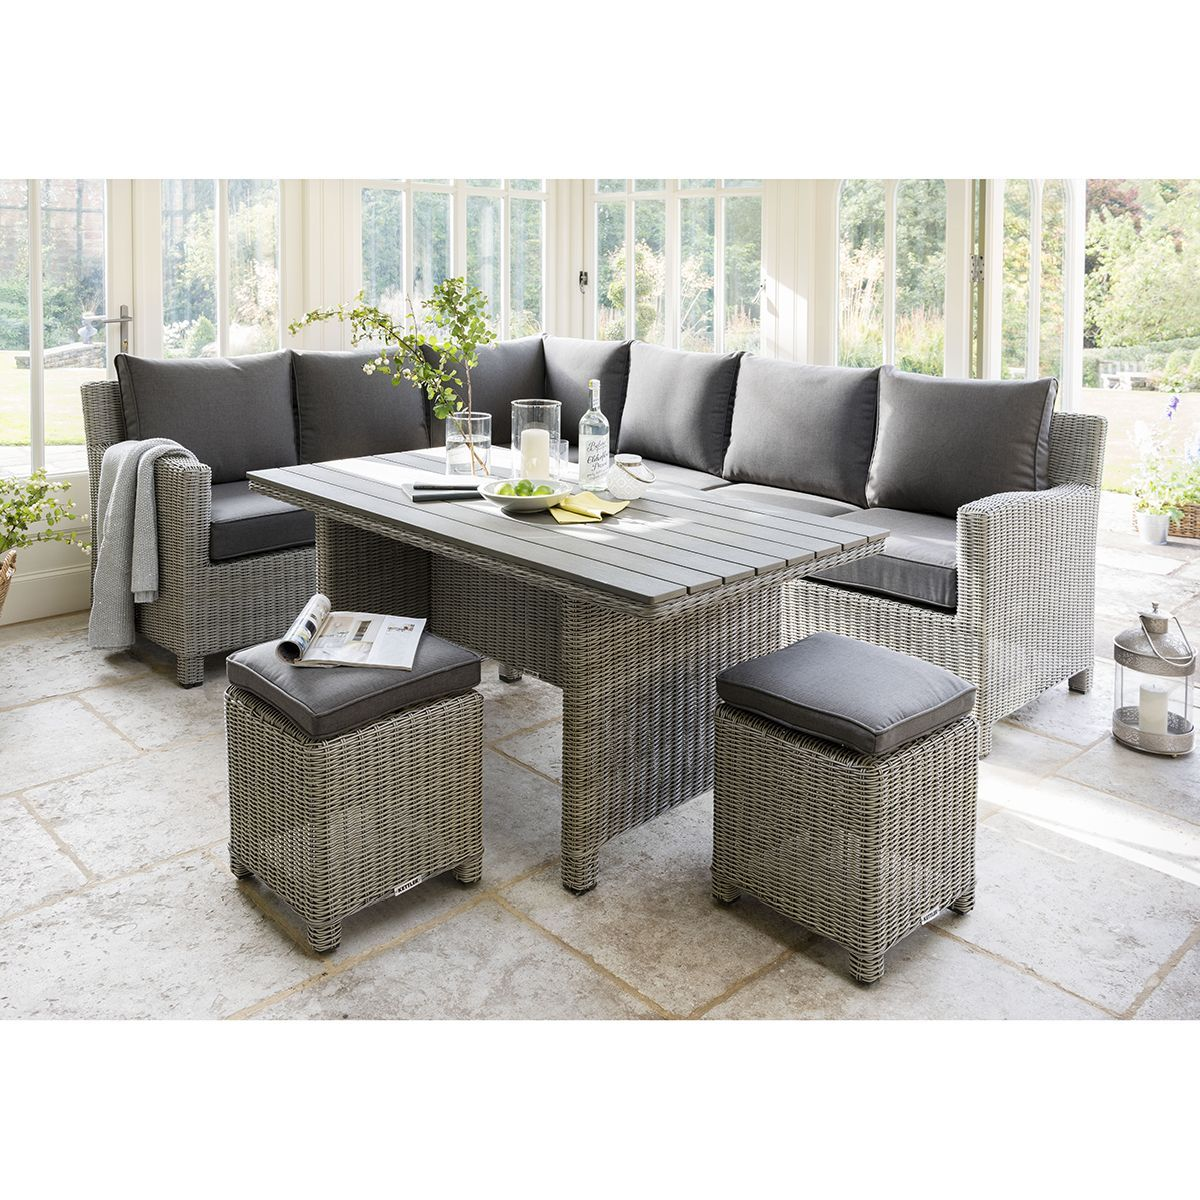 kettler palma casual dining corner set white wash notcutts notcutts - Garden Furniture Kettler